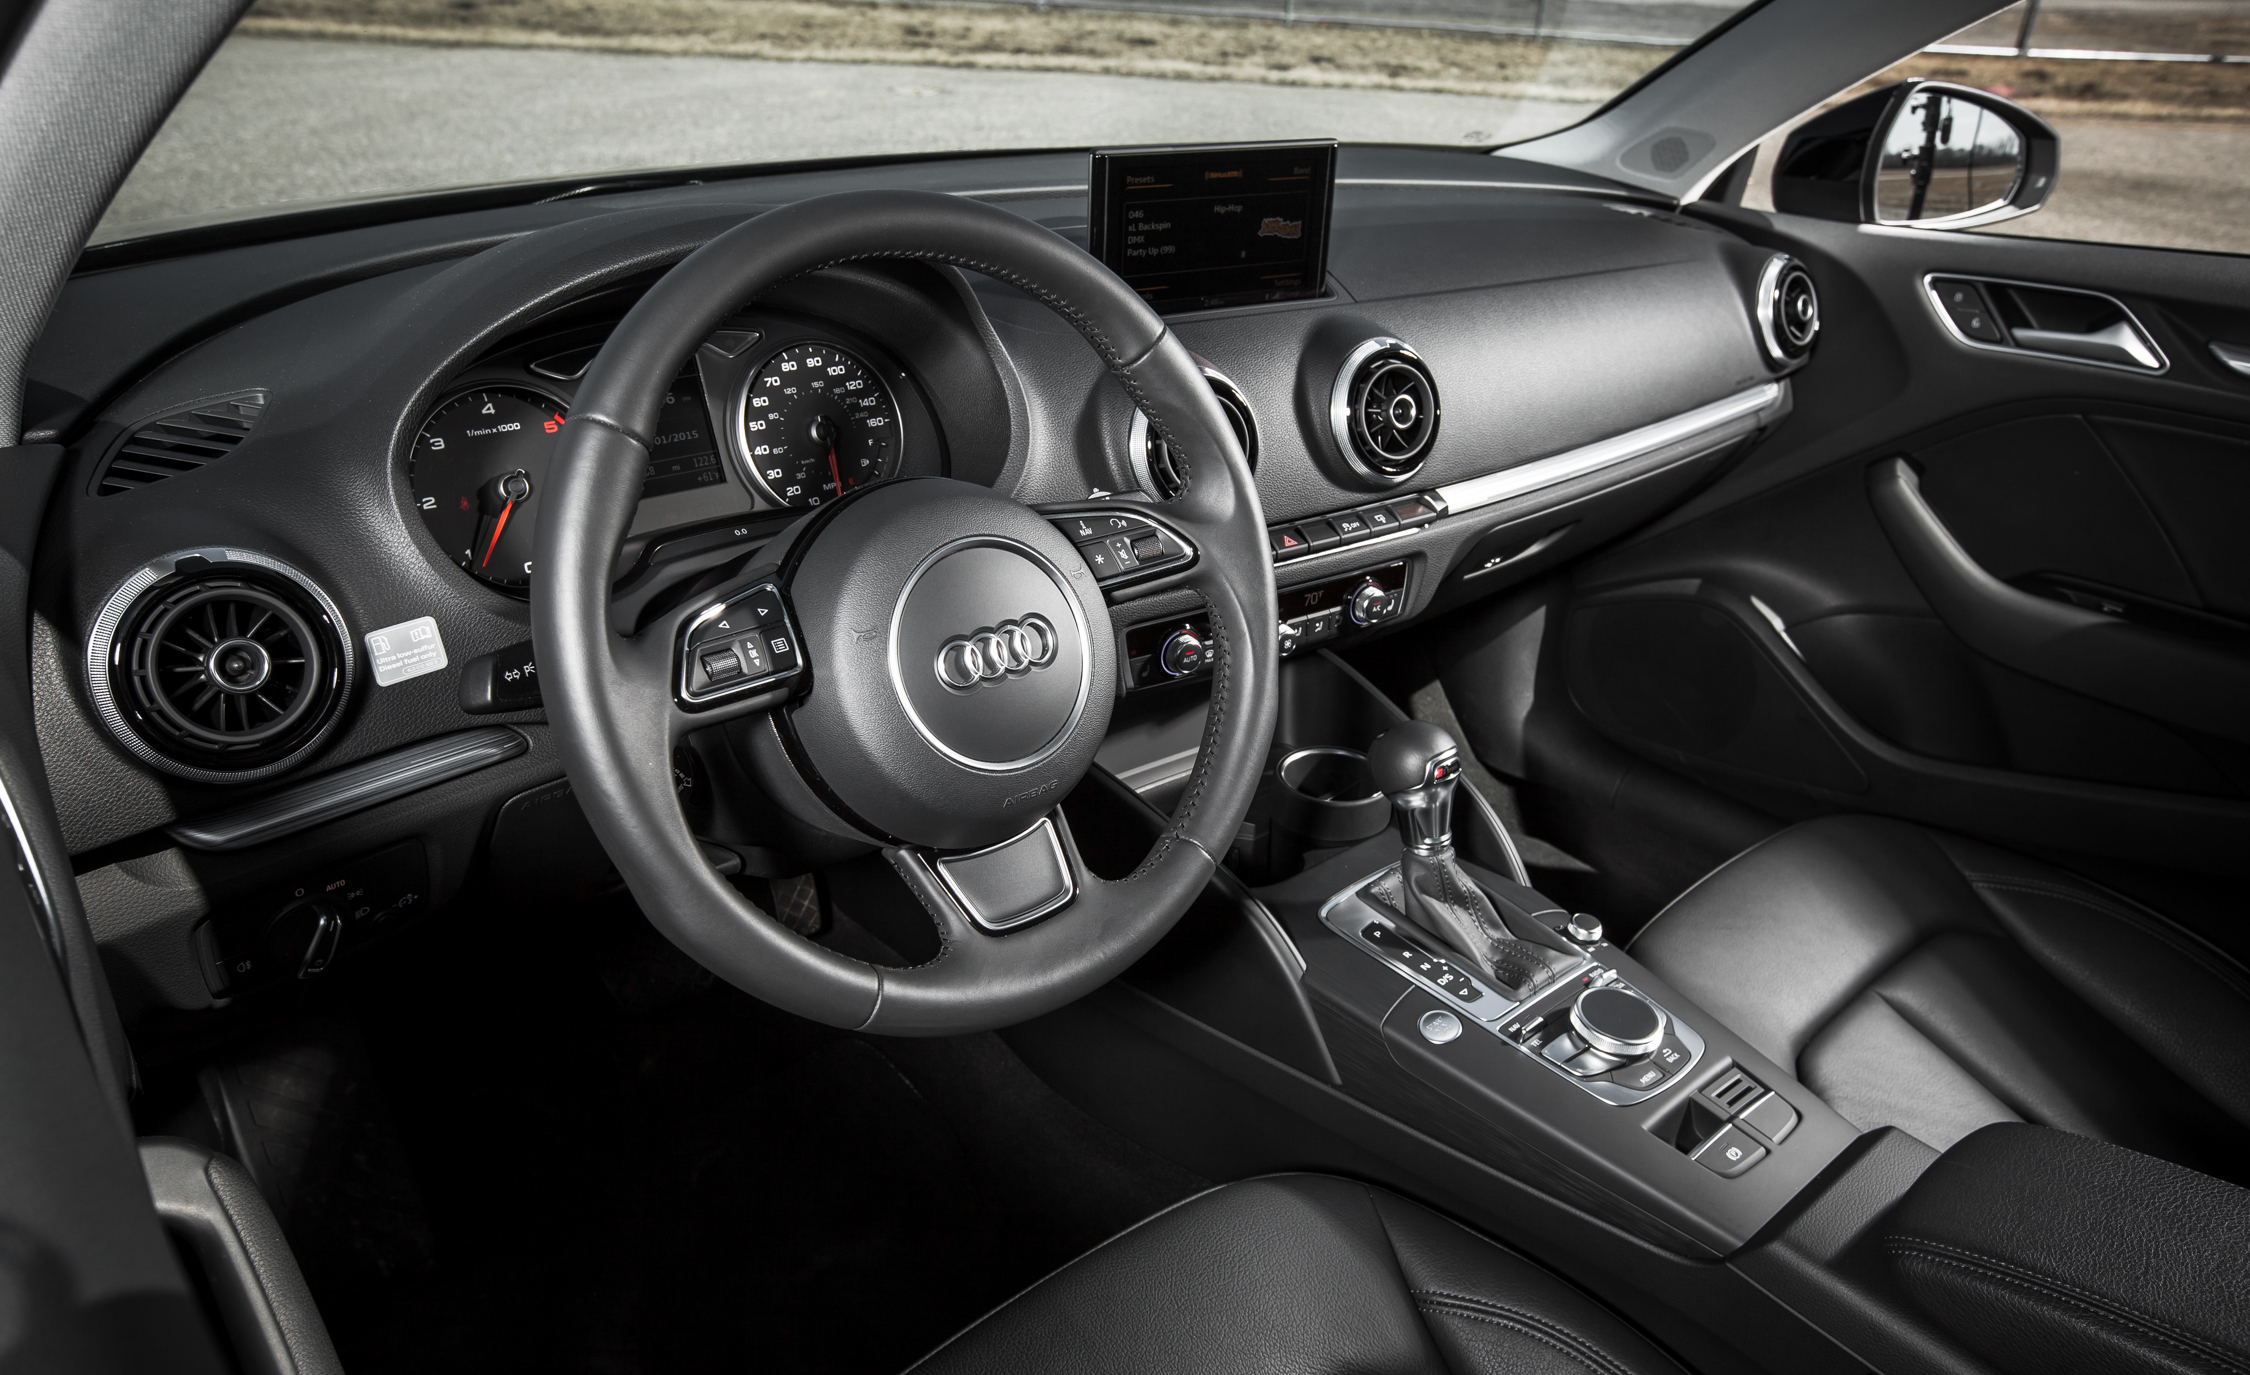 2015 Audi A3 TDI Interior Cockpit And Dash (Photo 32 of 50)